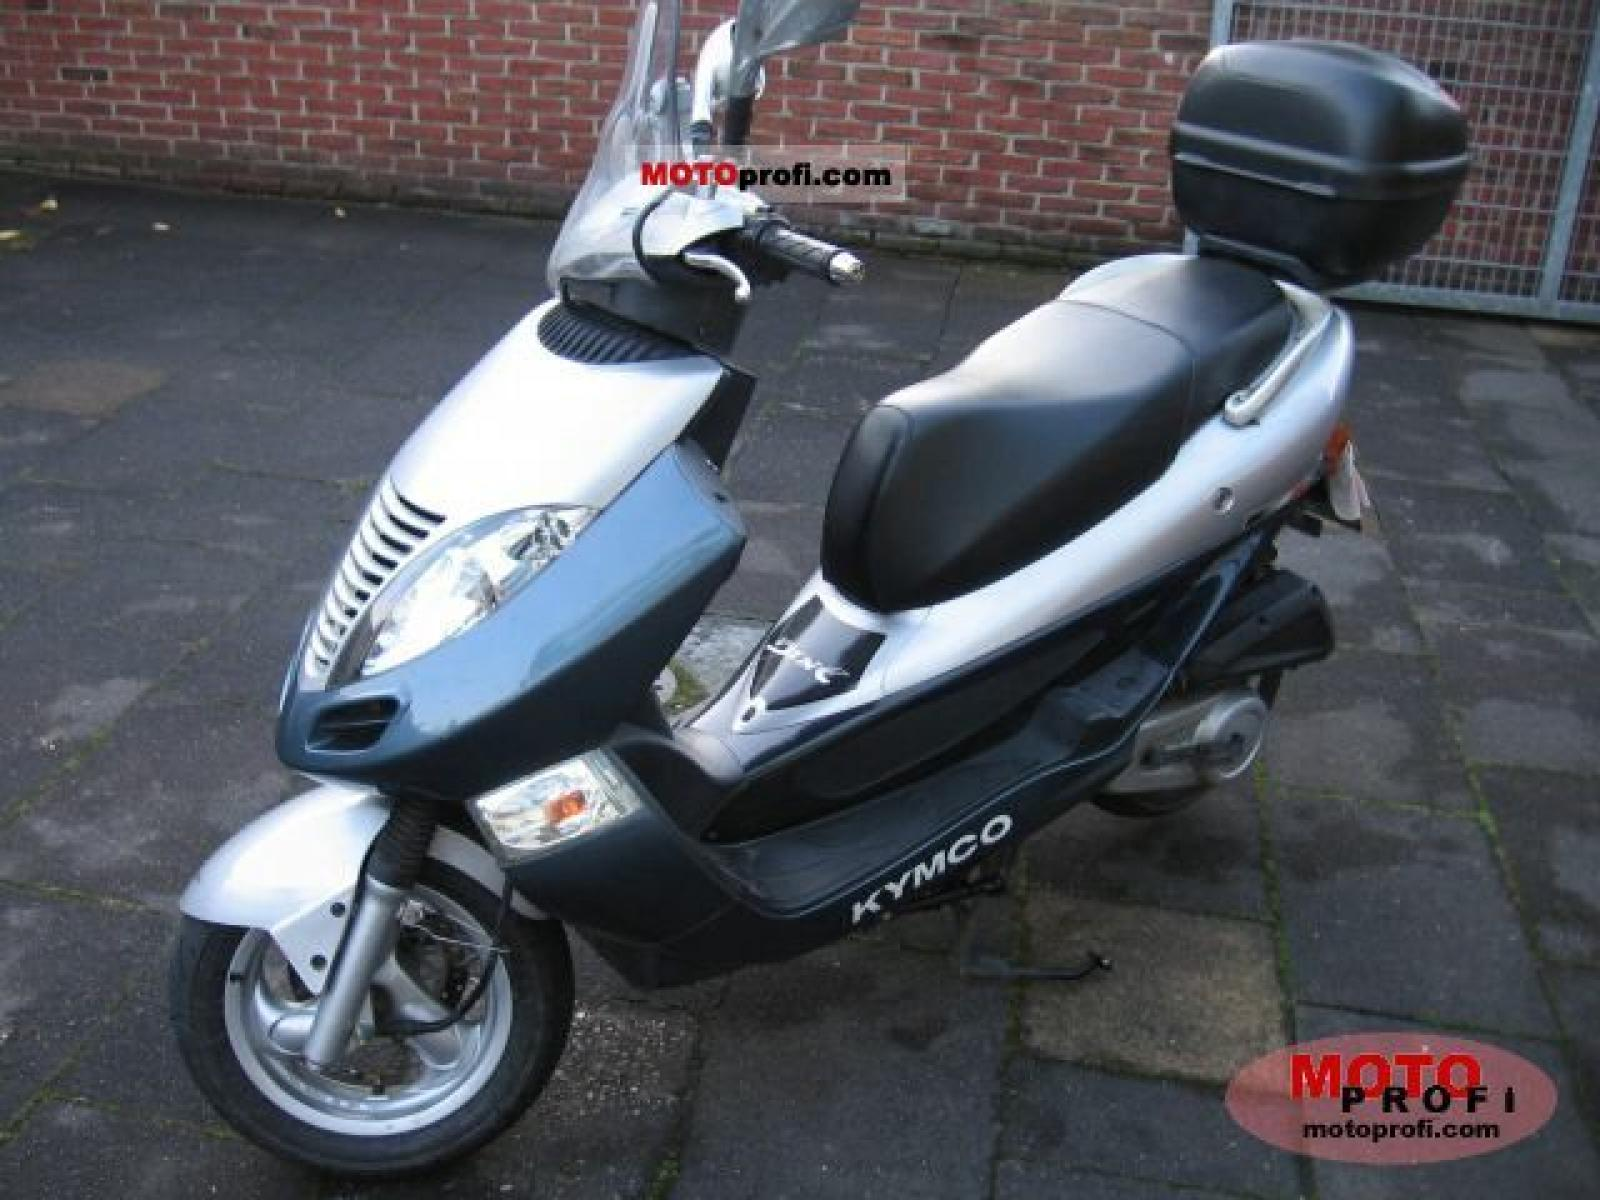 Kymco Hipster 125 2004 images #101543